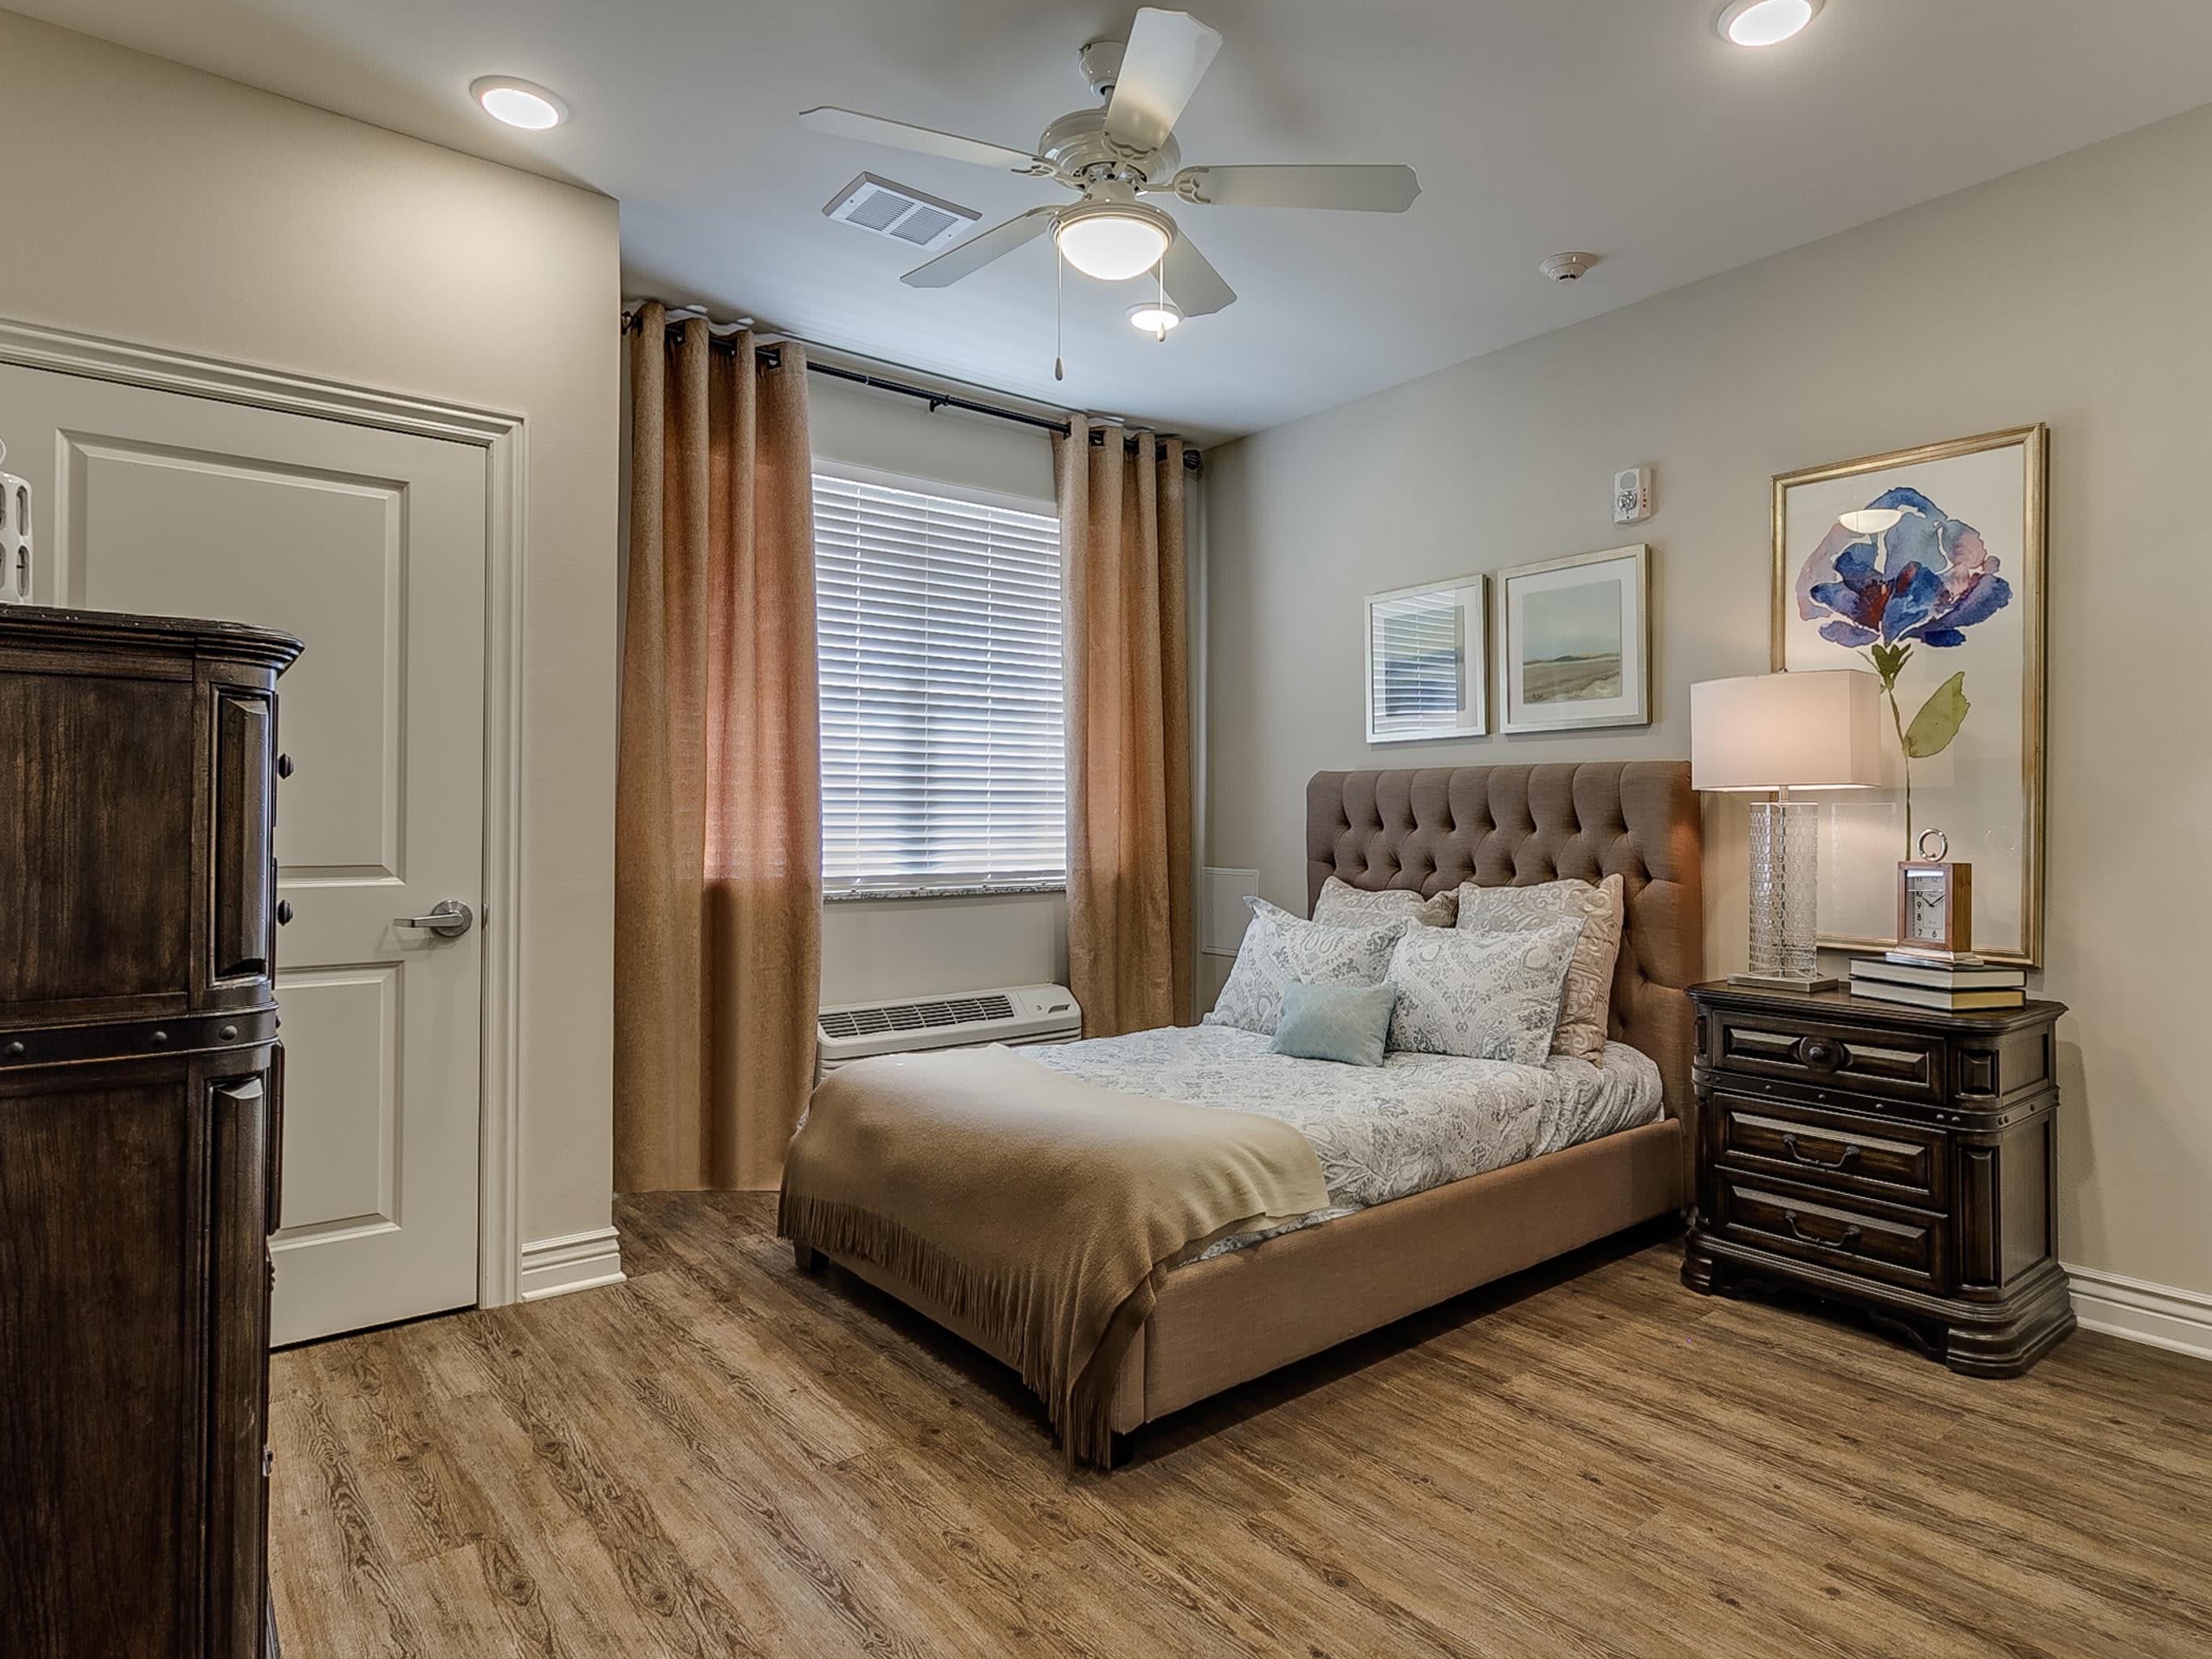 Beautiful bedroom at Iris Memory Care of Rowlett in Rowlett, TX